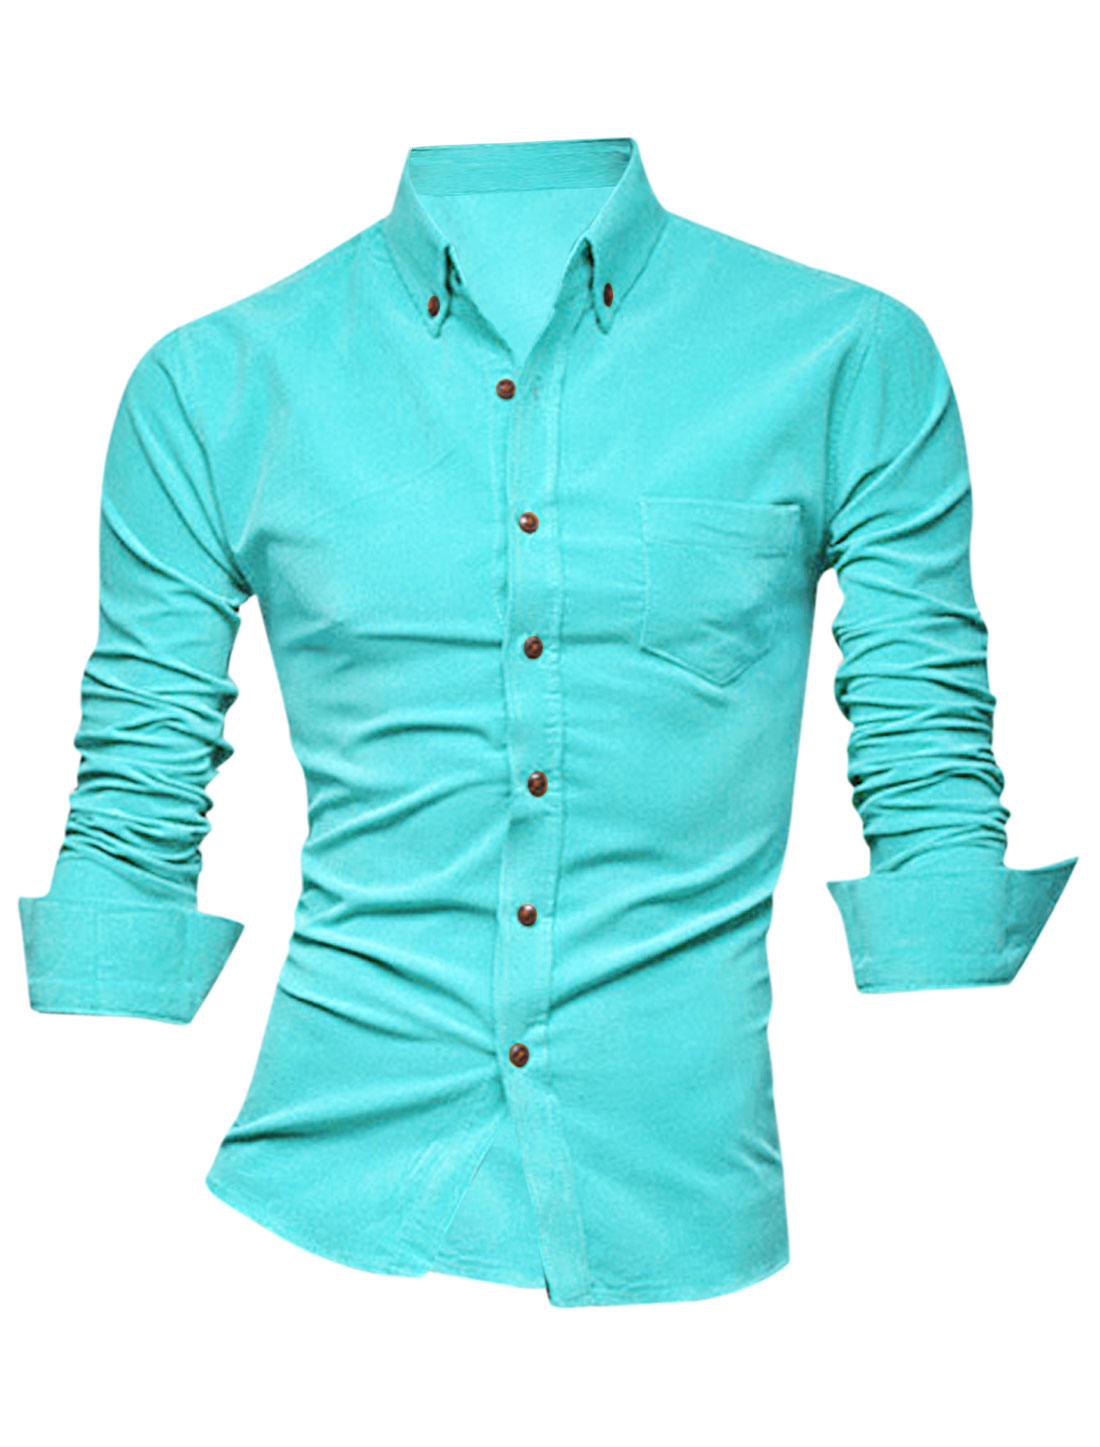 Men Button Down Closure Long Sleeve Leisure Shirt Aqua M